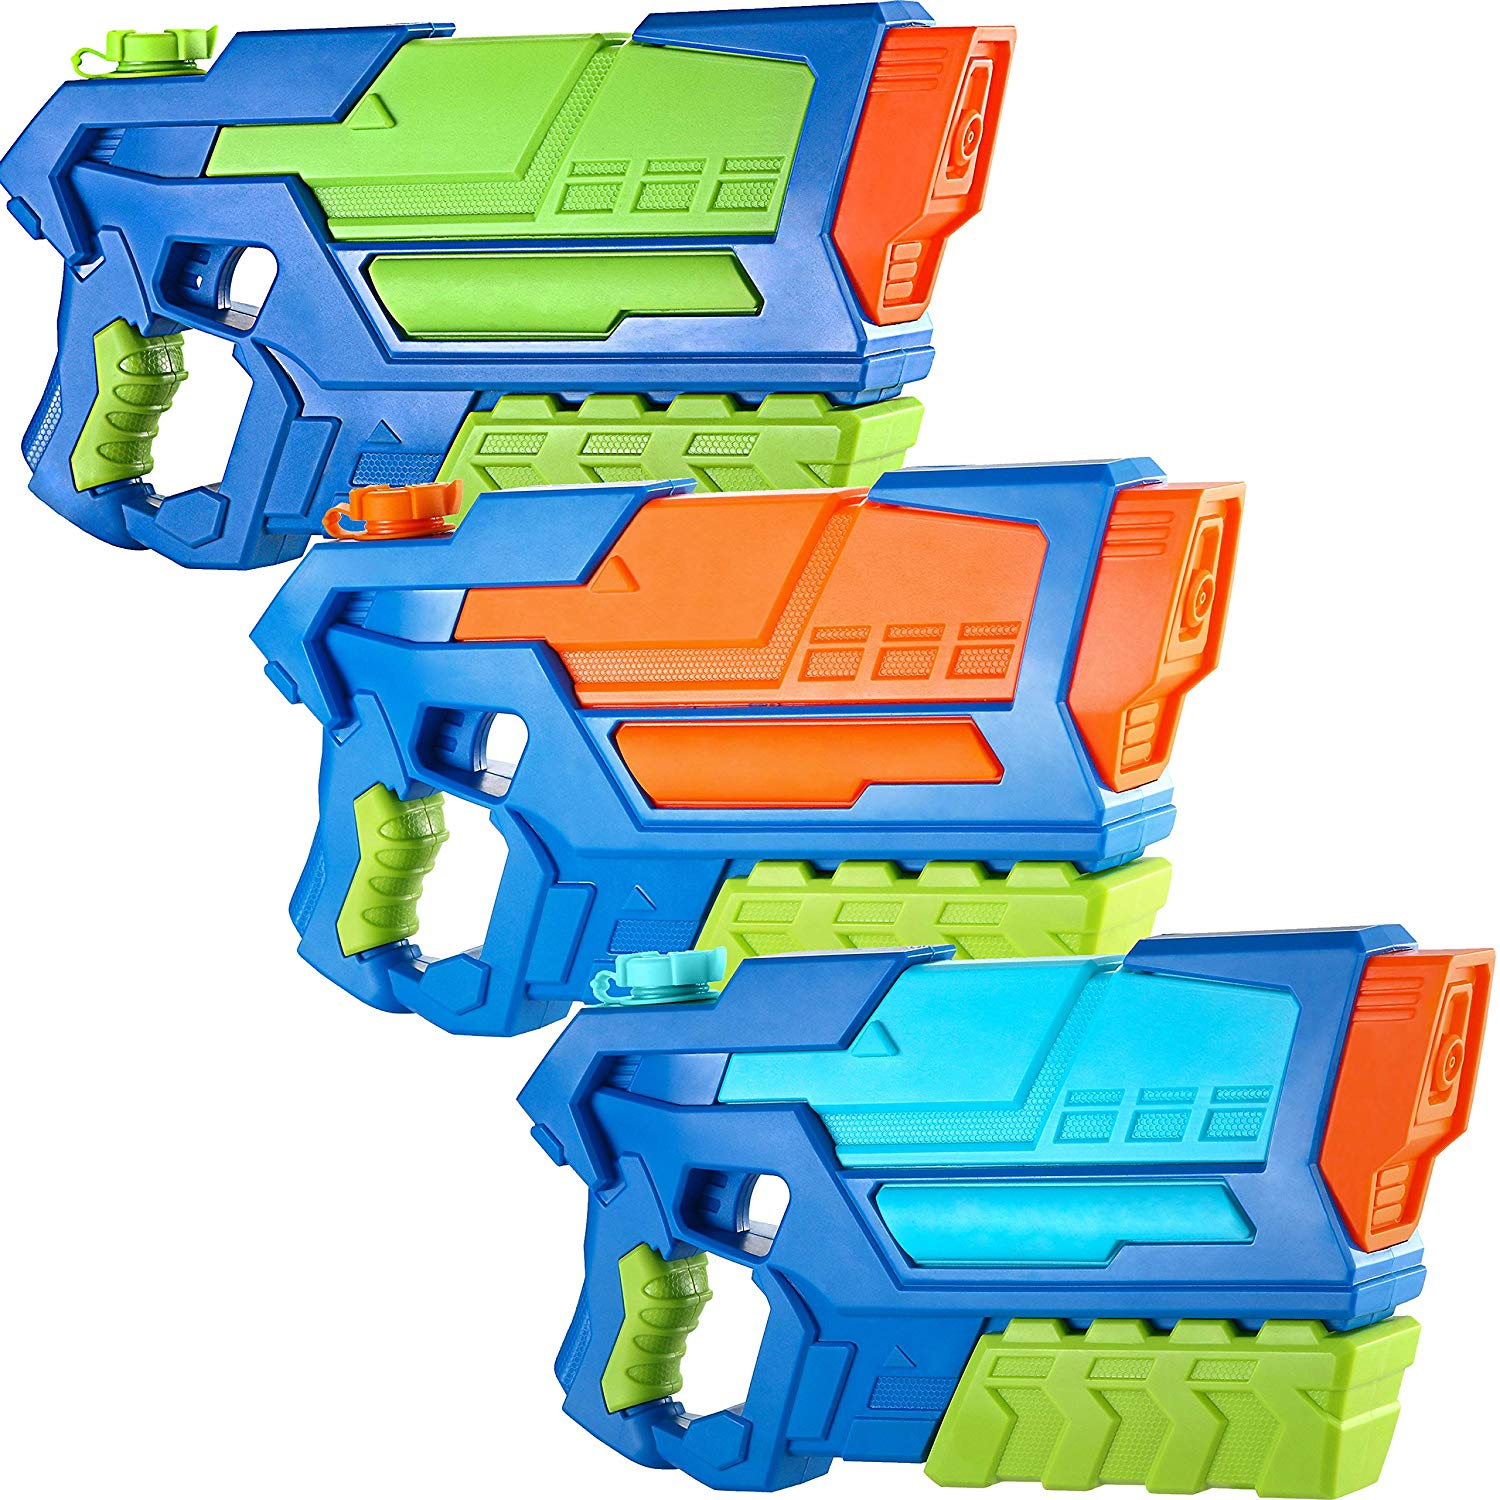 Spritz Aqua Phaser: 3 in 1 Water Blaster